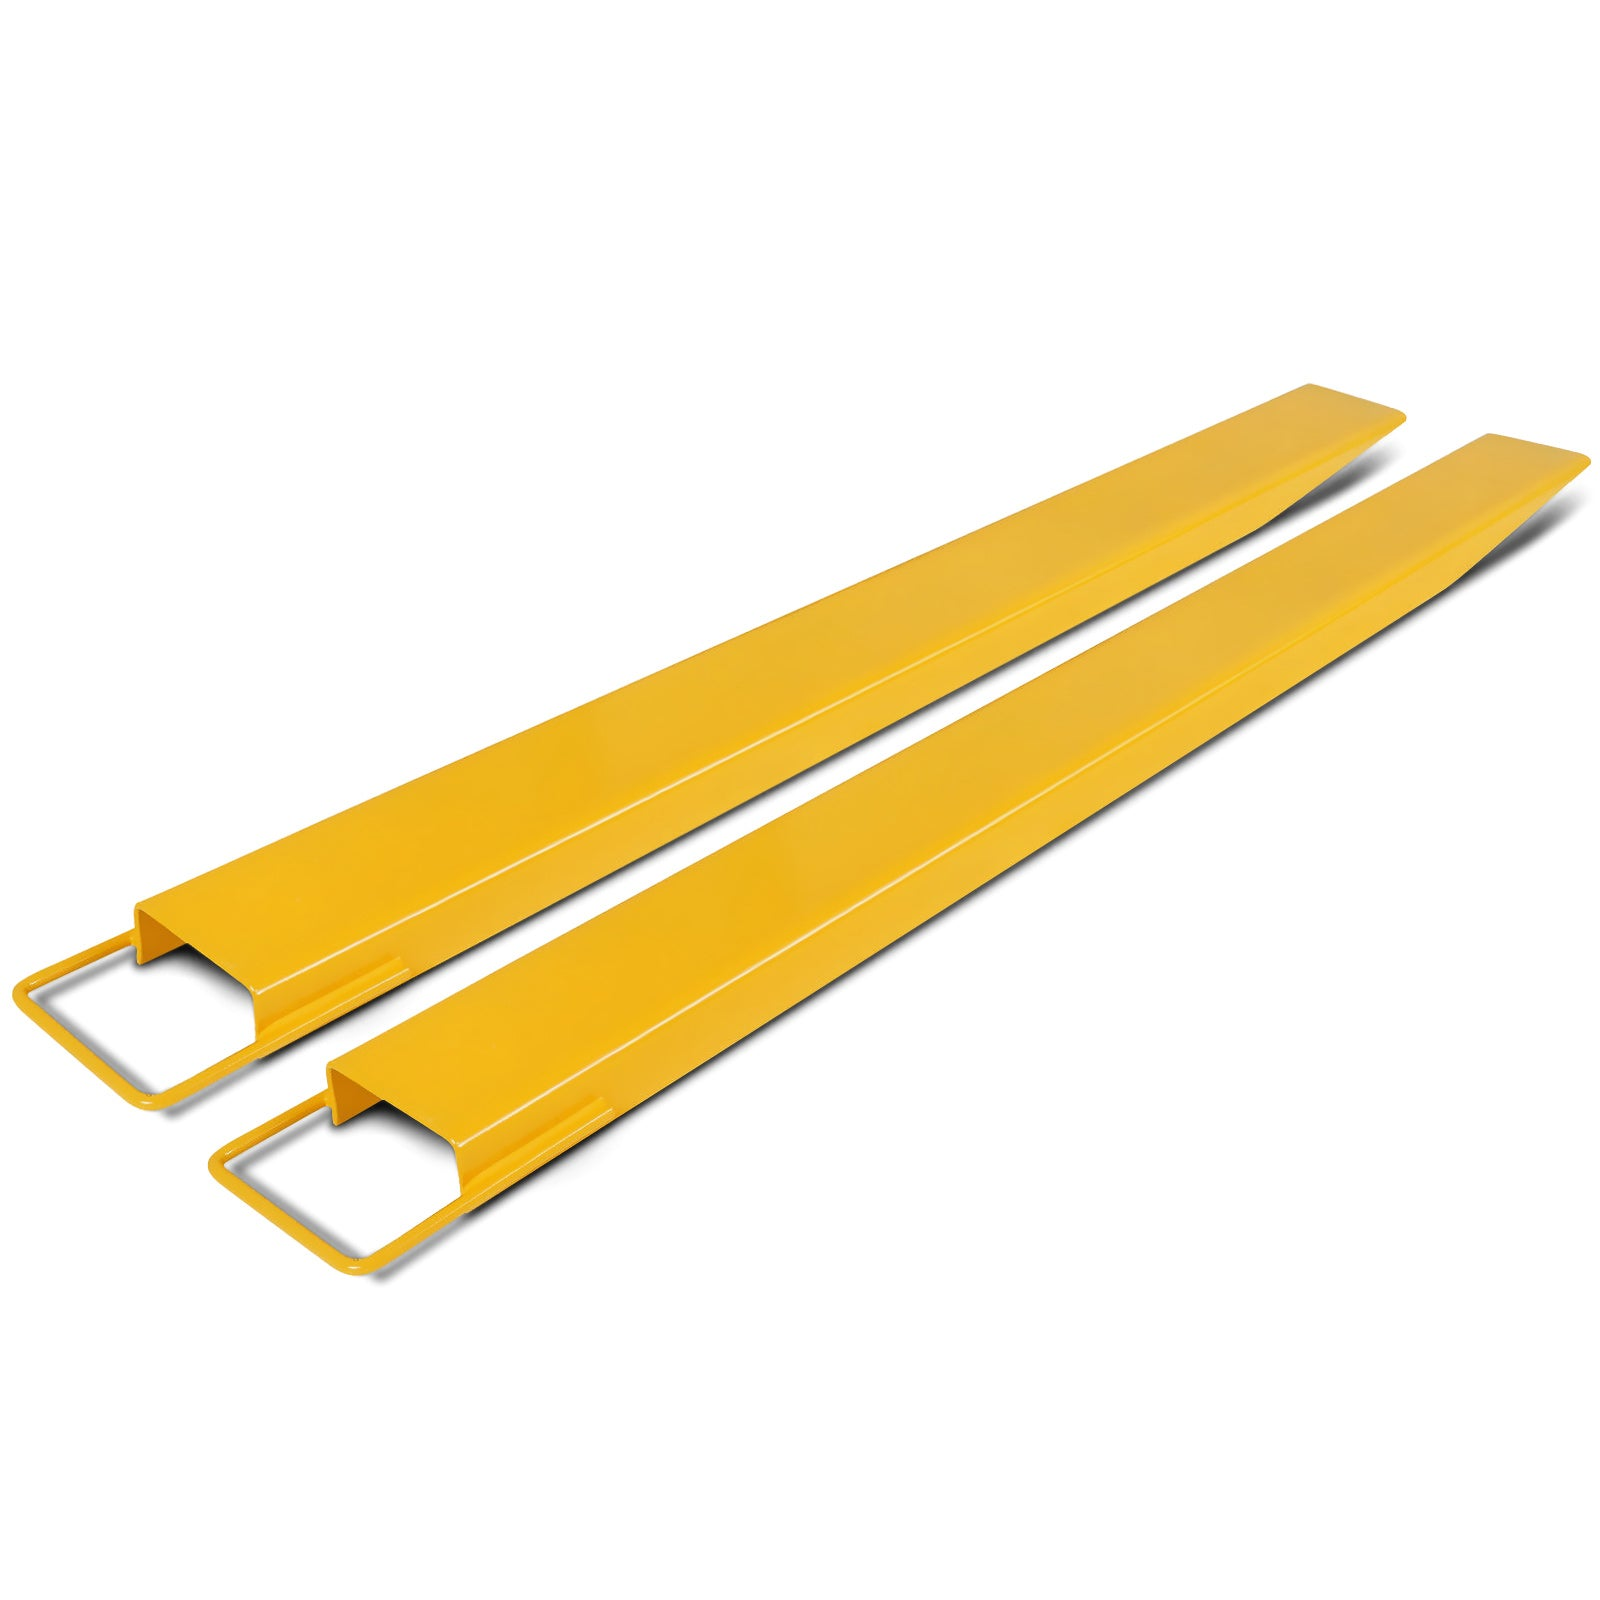 60''x 5.8'' Forklift Pallet Fork Extensions Pair 2 Fork Thickness Lift Truck